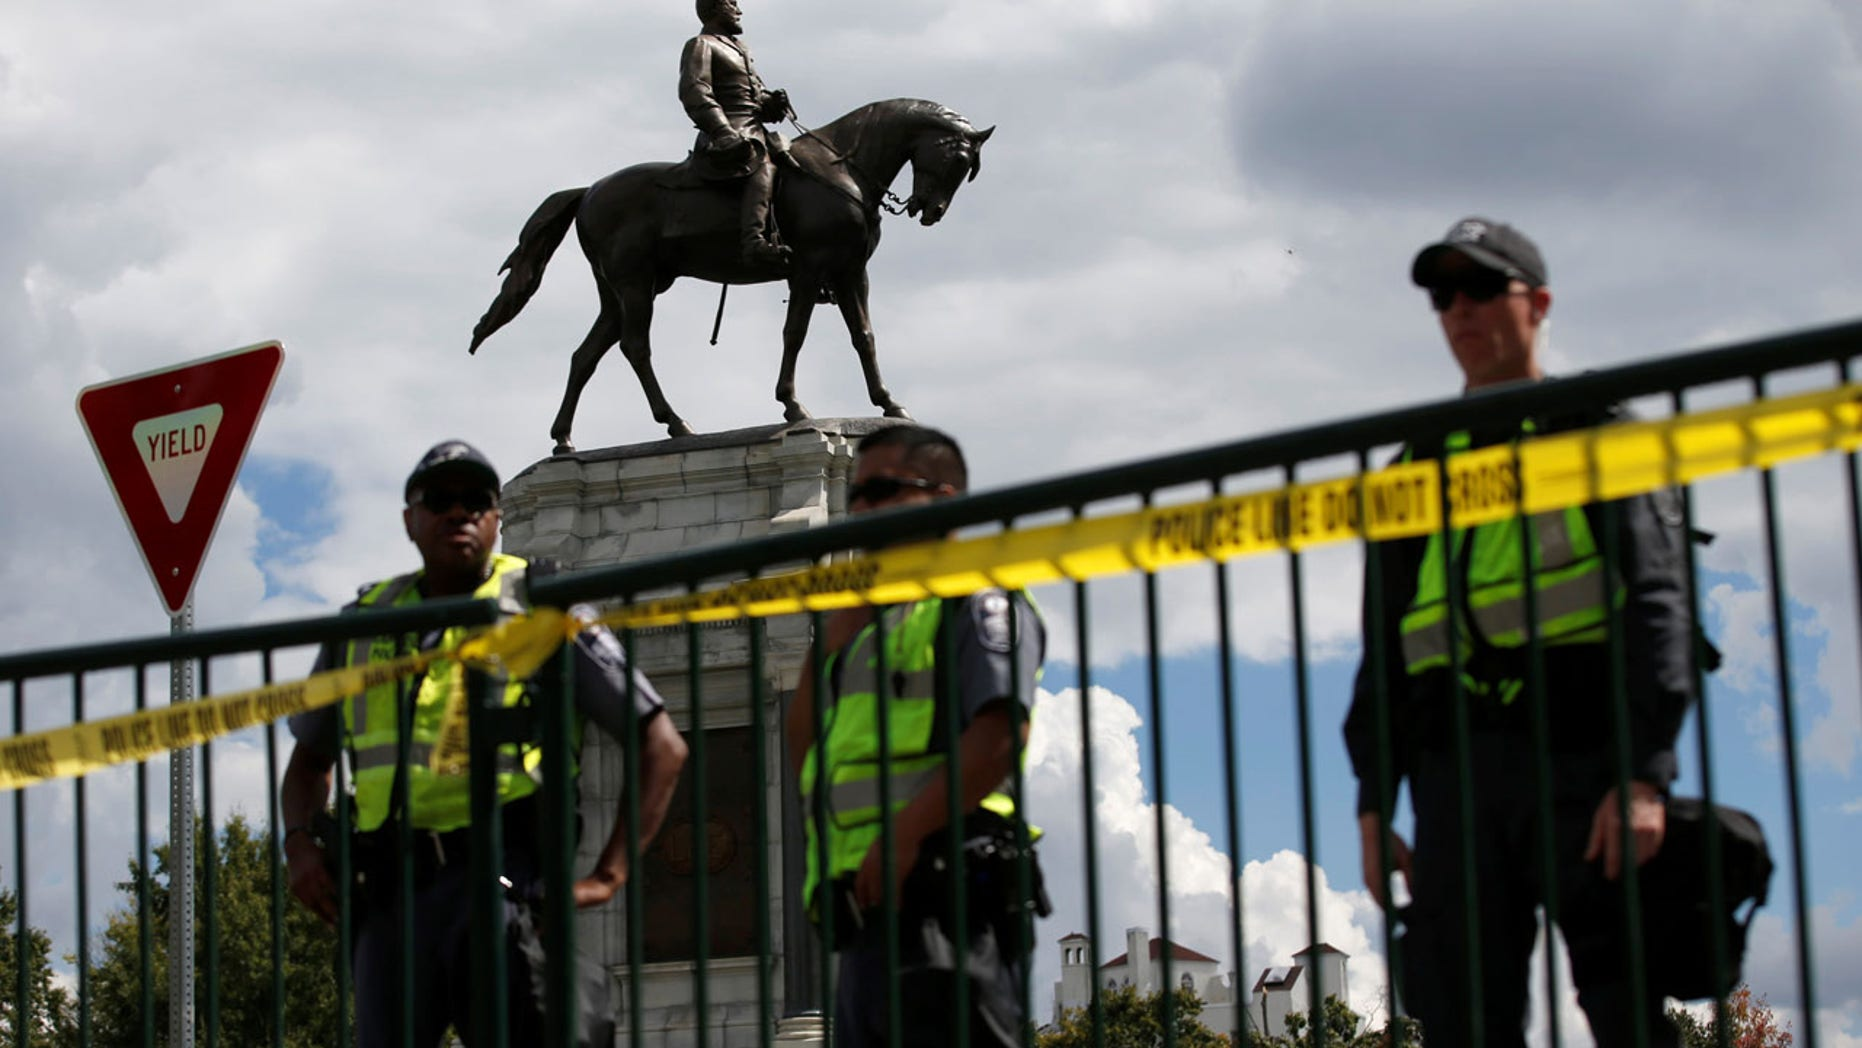 FILE 2017: Police stand in front of the statue of Confederate General Robert E. Lee in Richmond, Virginia